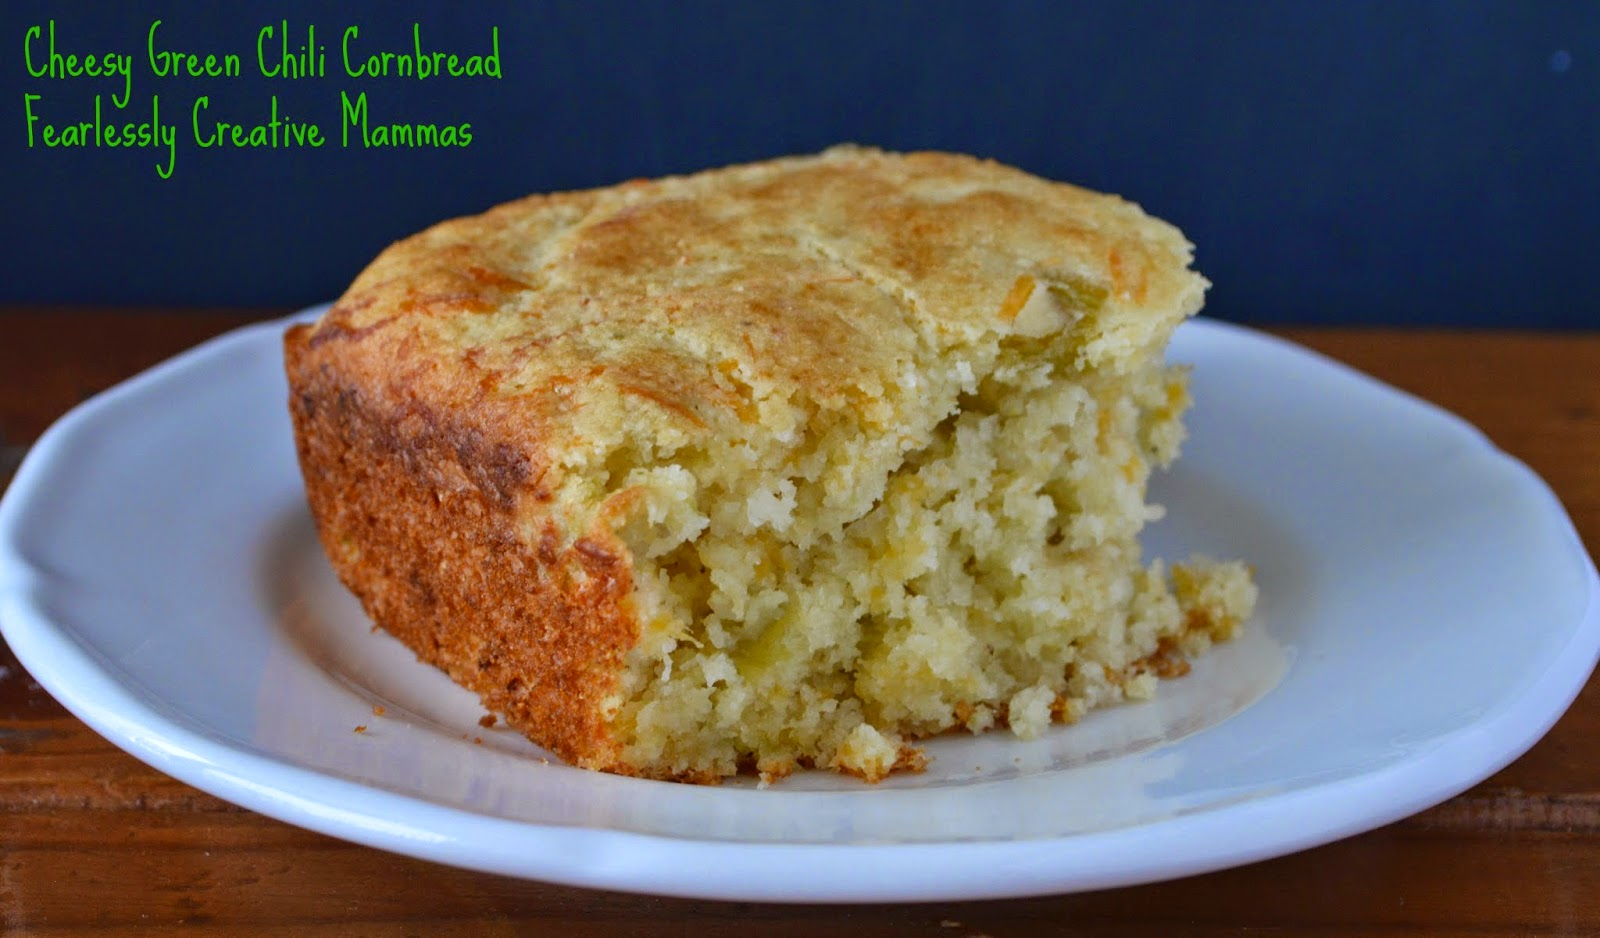 Cornbread with an amazing cheesy and green chili flavor